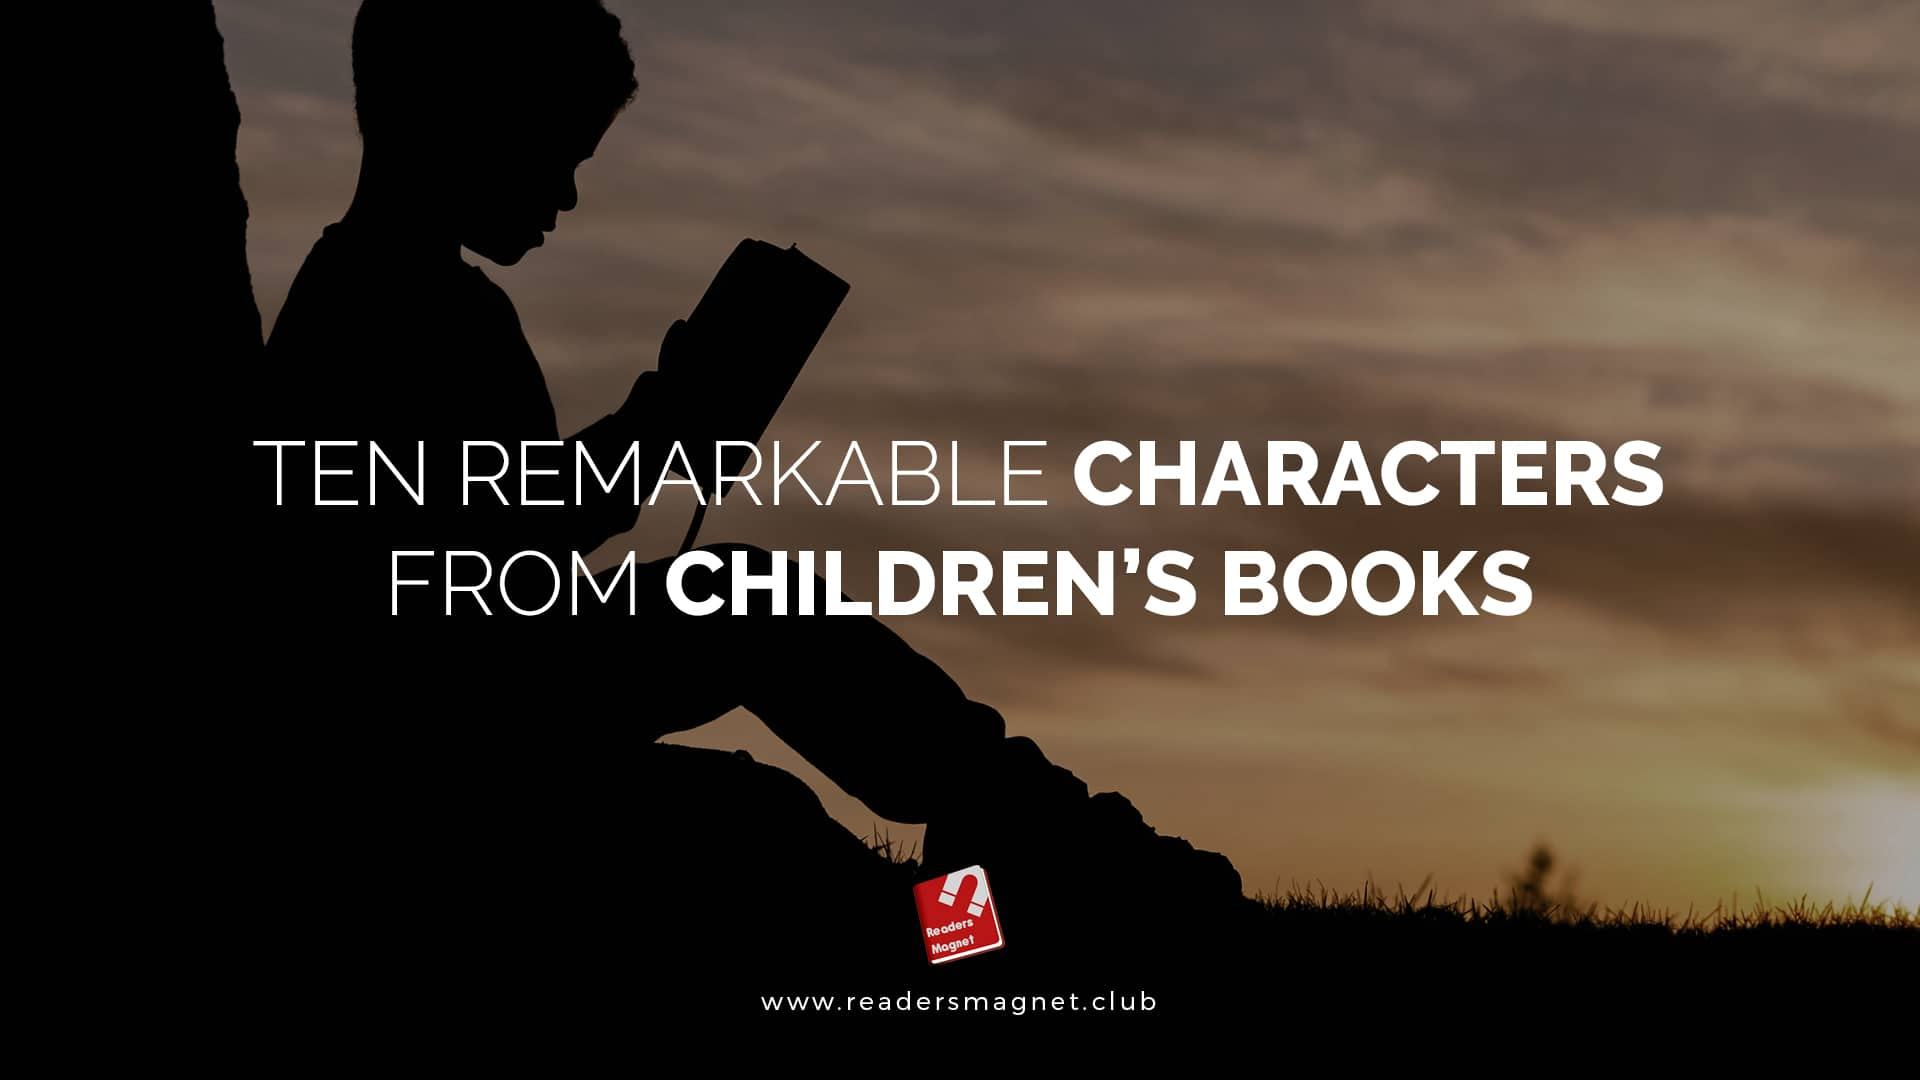 Ten Remarkable Characters from Children's Books banner